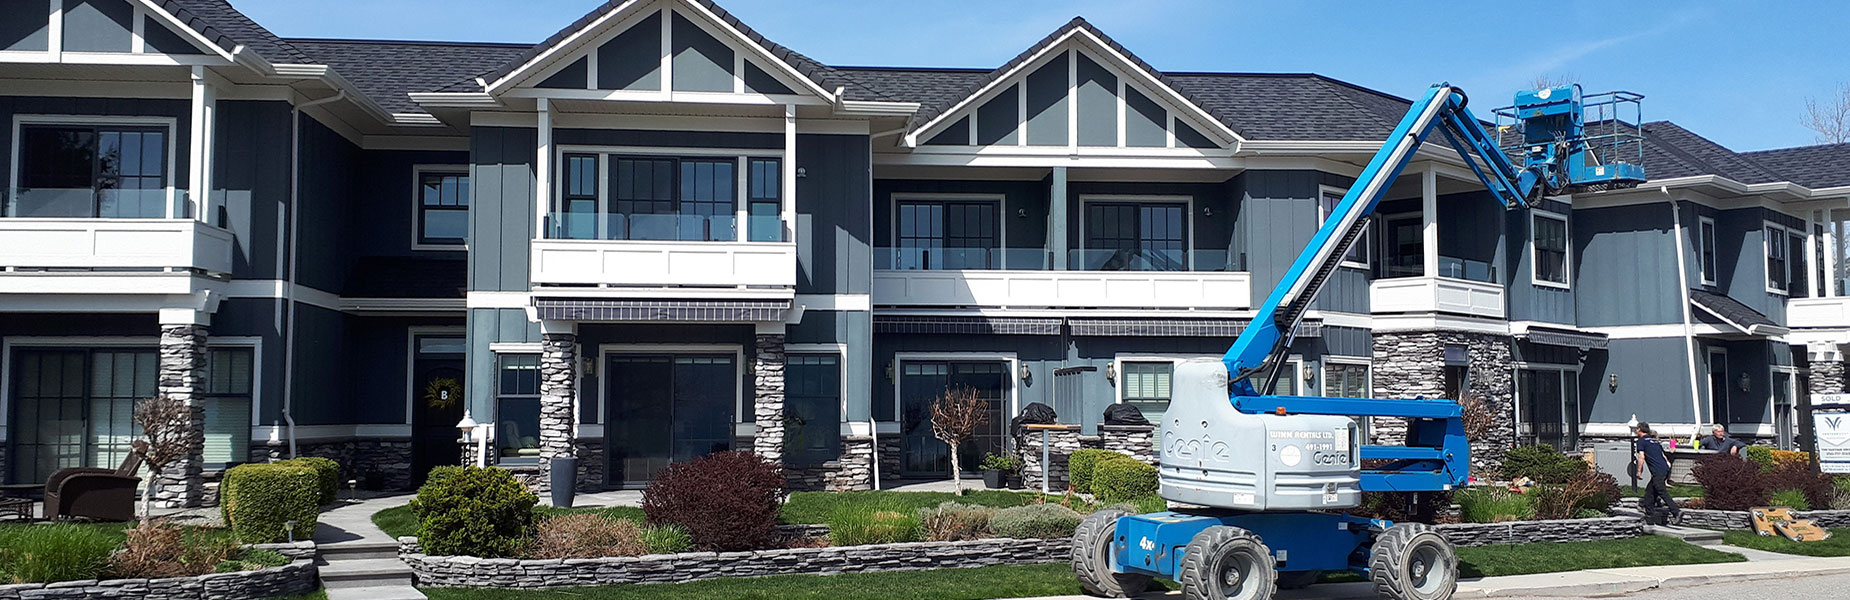 New Era Professional Painters help you with all your exterior repainting needs